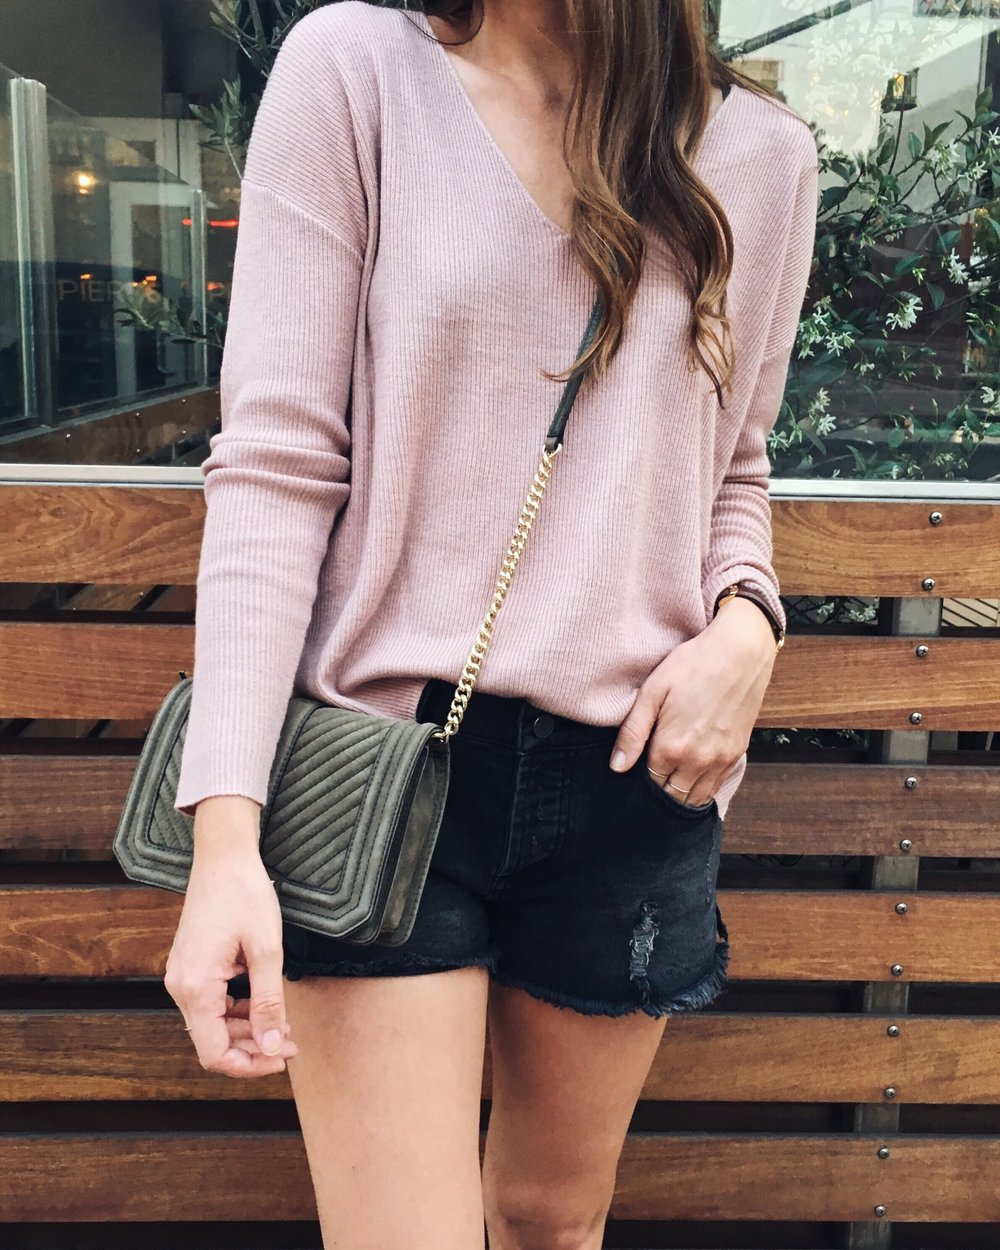 BP Sweater  |  Halogen Flats  |  DSTLD Shorts  c/o (get 10% off with code GIRLMEETSGOLD)